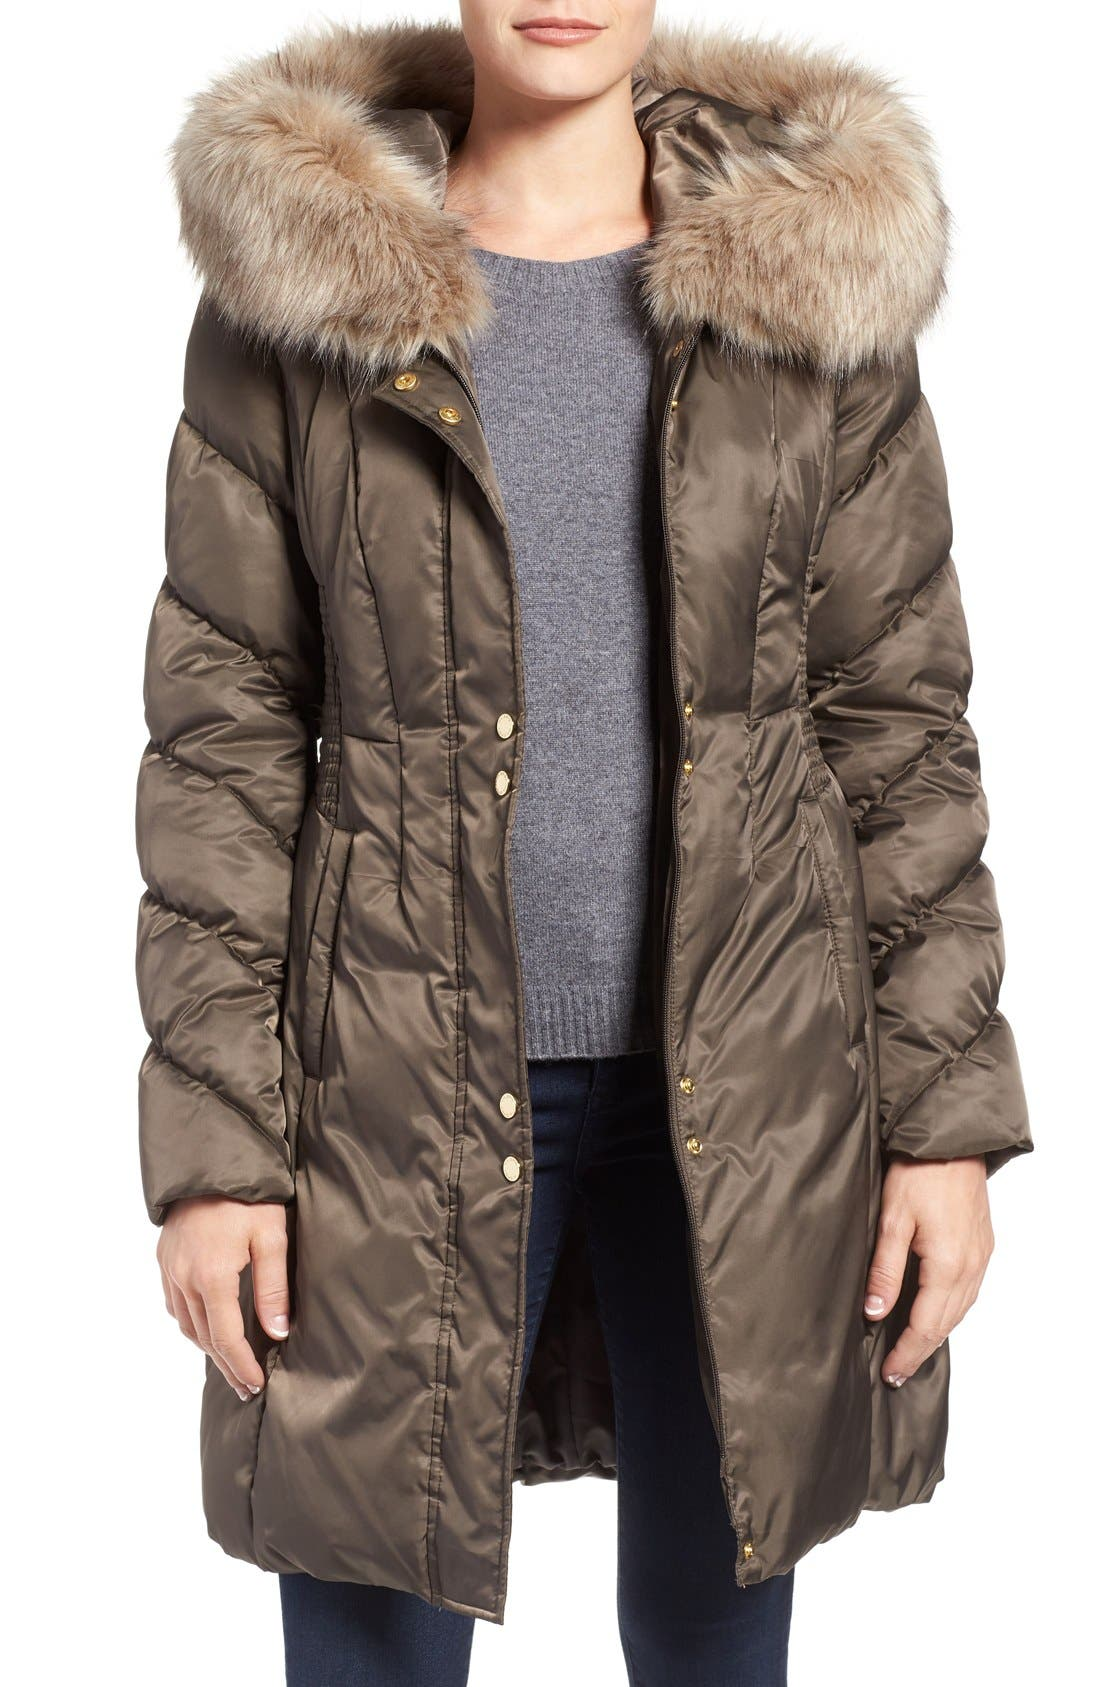 Alternate Image 1 Selected - Via Spiga Water Repellent Quilted Puffer Coat with Faux Fur Trim